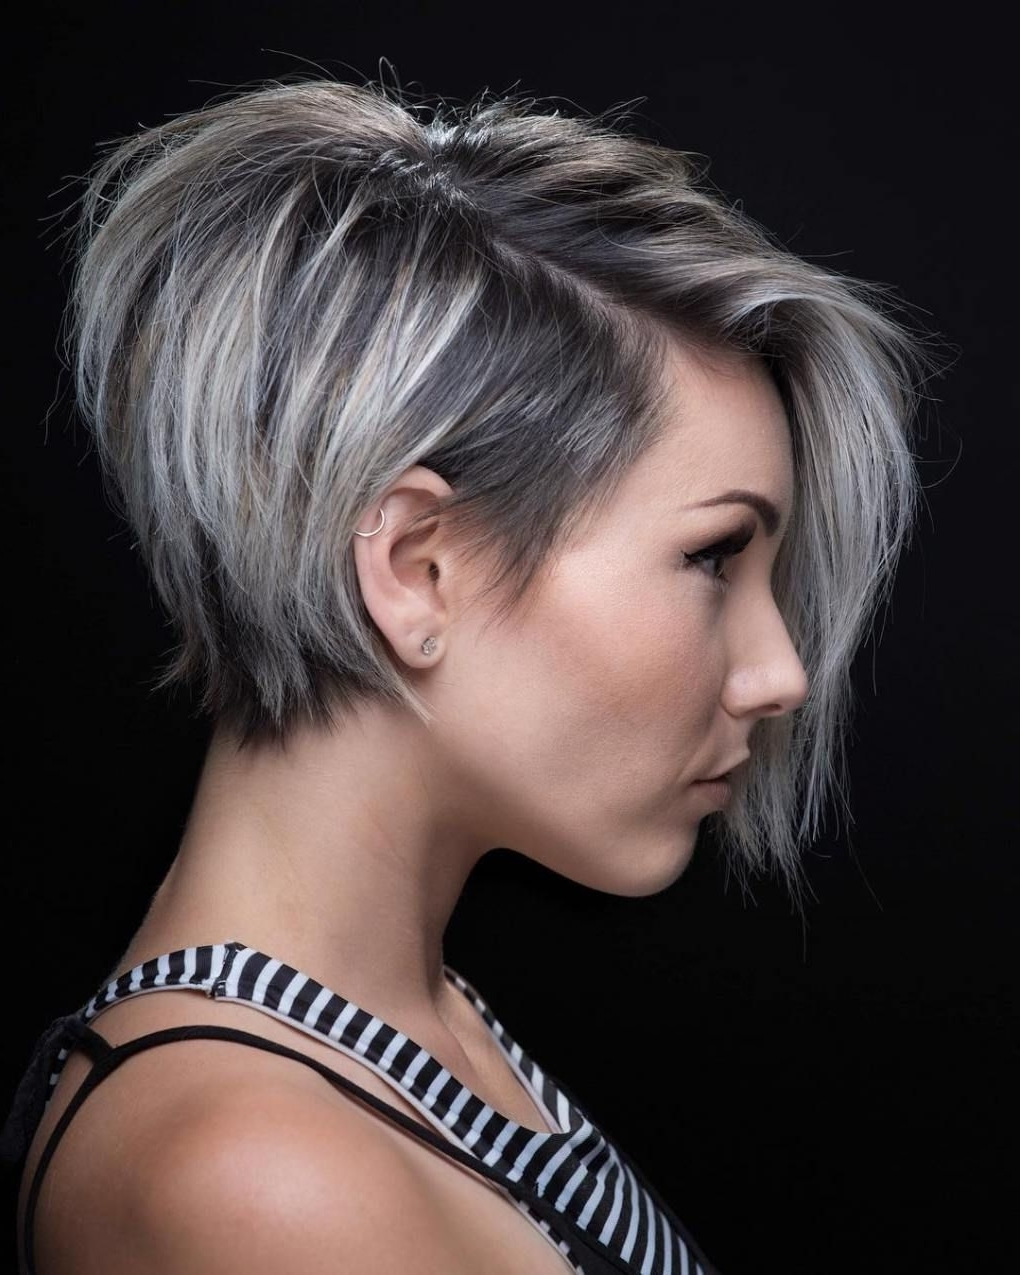 70 Short Shaggy, Spiky, Edgy Pixie Cuts And Hairstyles | Long For Newest Long Shaggy Pixie Hairstyles (View 15 of 15)